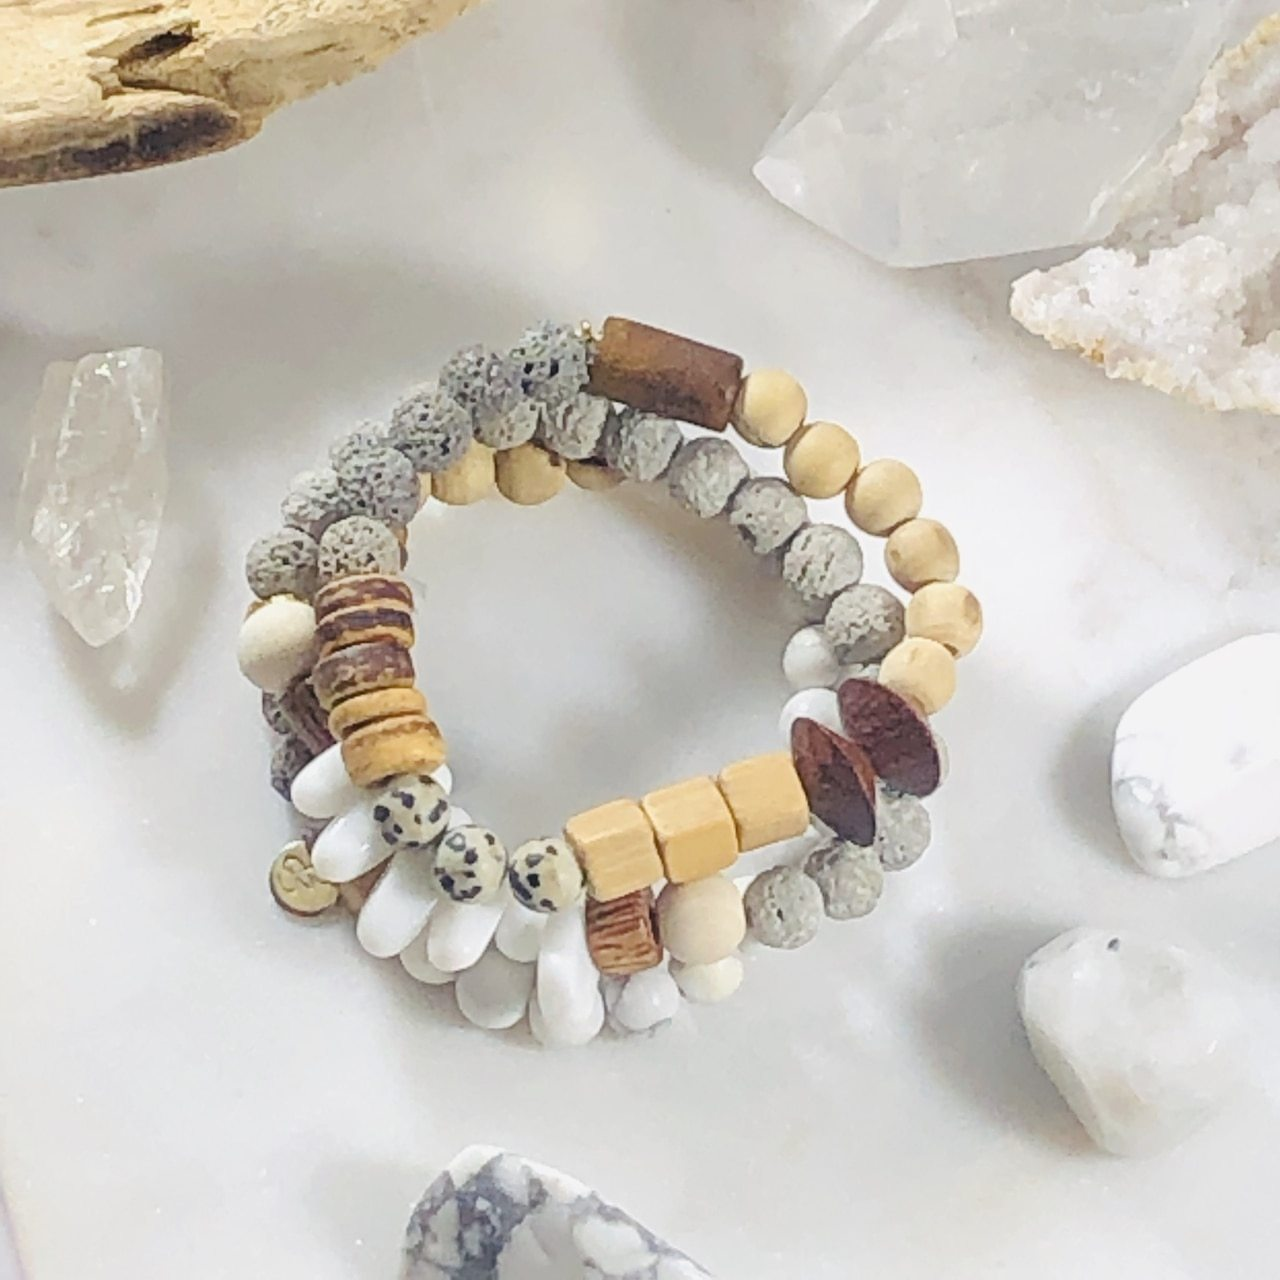 Zen Bracelet Stack (Diffuser) for Meditation and Grounding